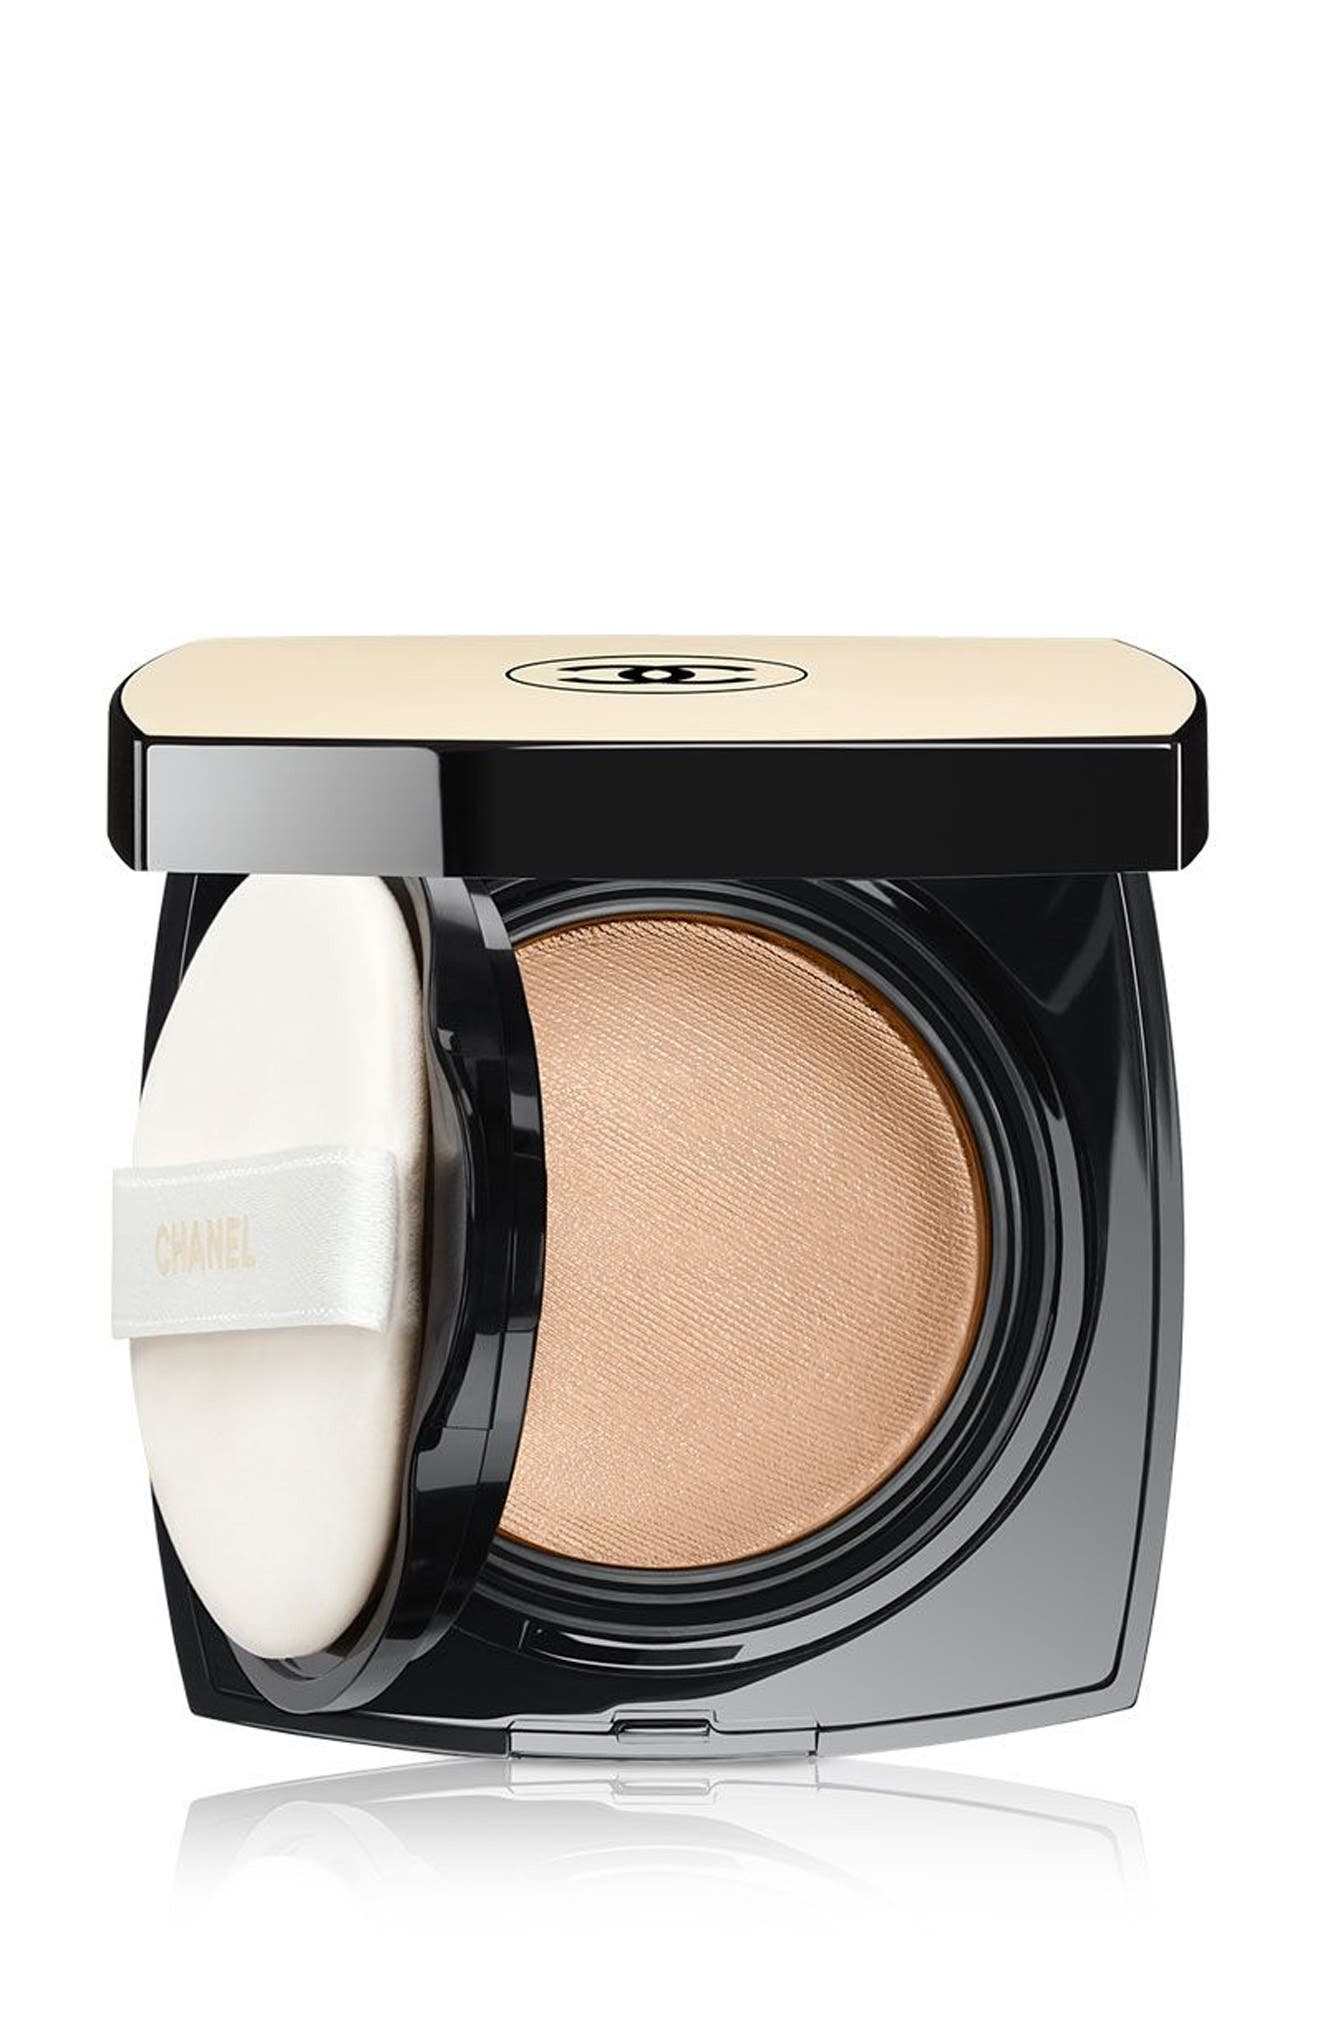 Alternate Image 1 Selected - CHANEL LES BEIGES Gel Touch Healthy Glow Tint Broad Spectrum SPF 15